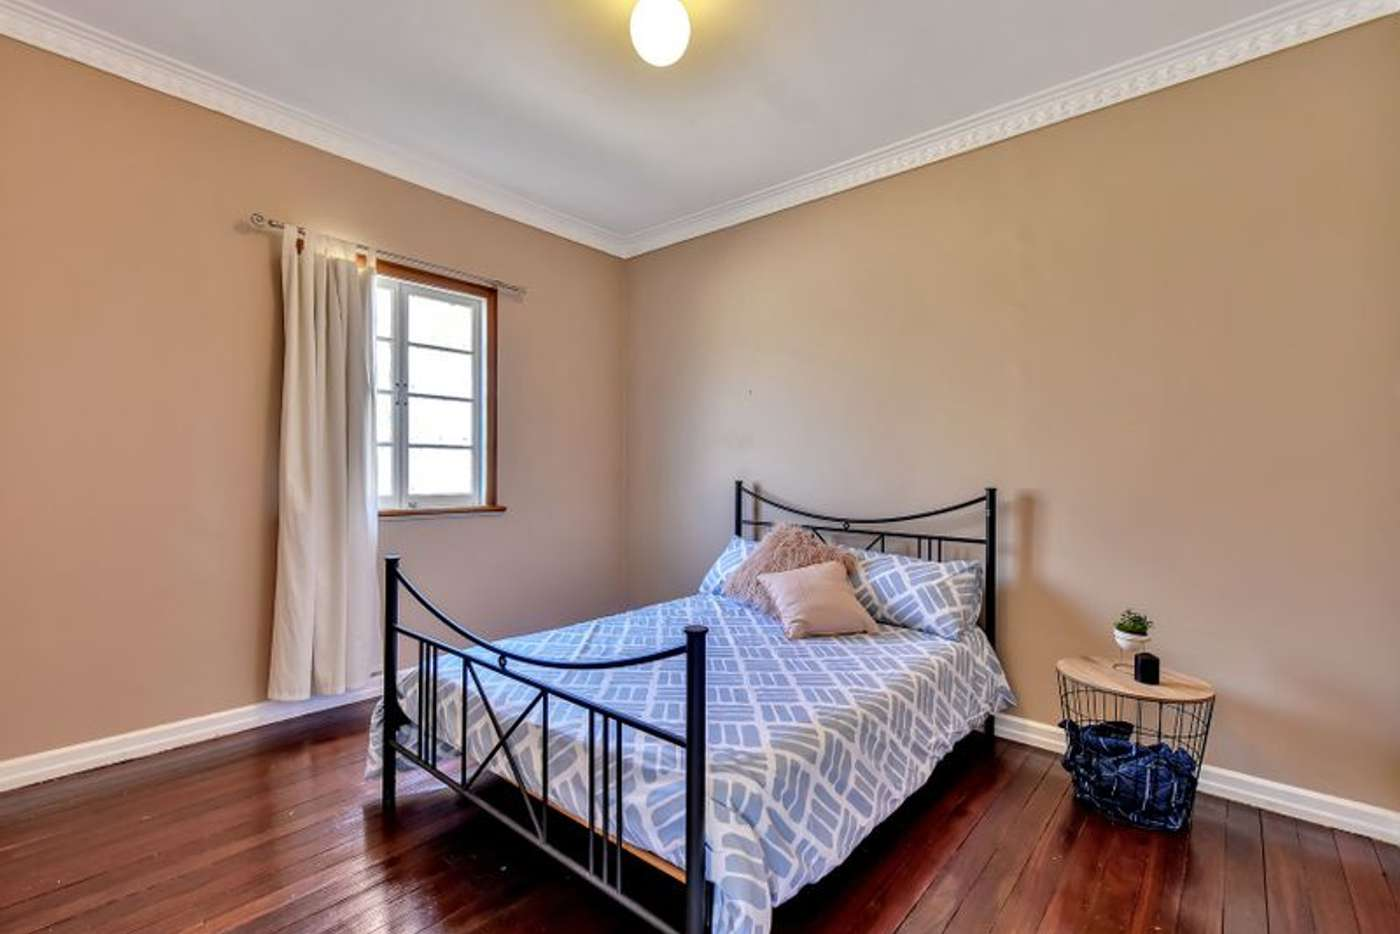 Seventh view of Homely house listing, 23 Vineyard Street, One Mile QLD 4305